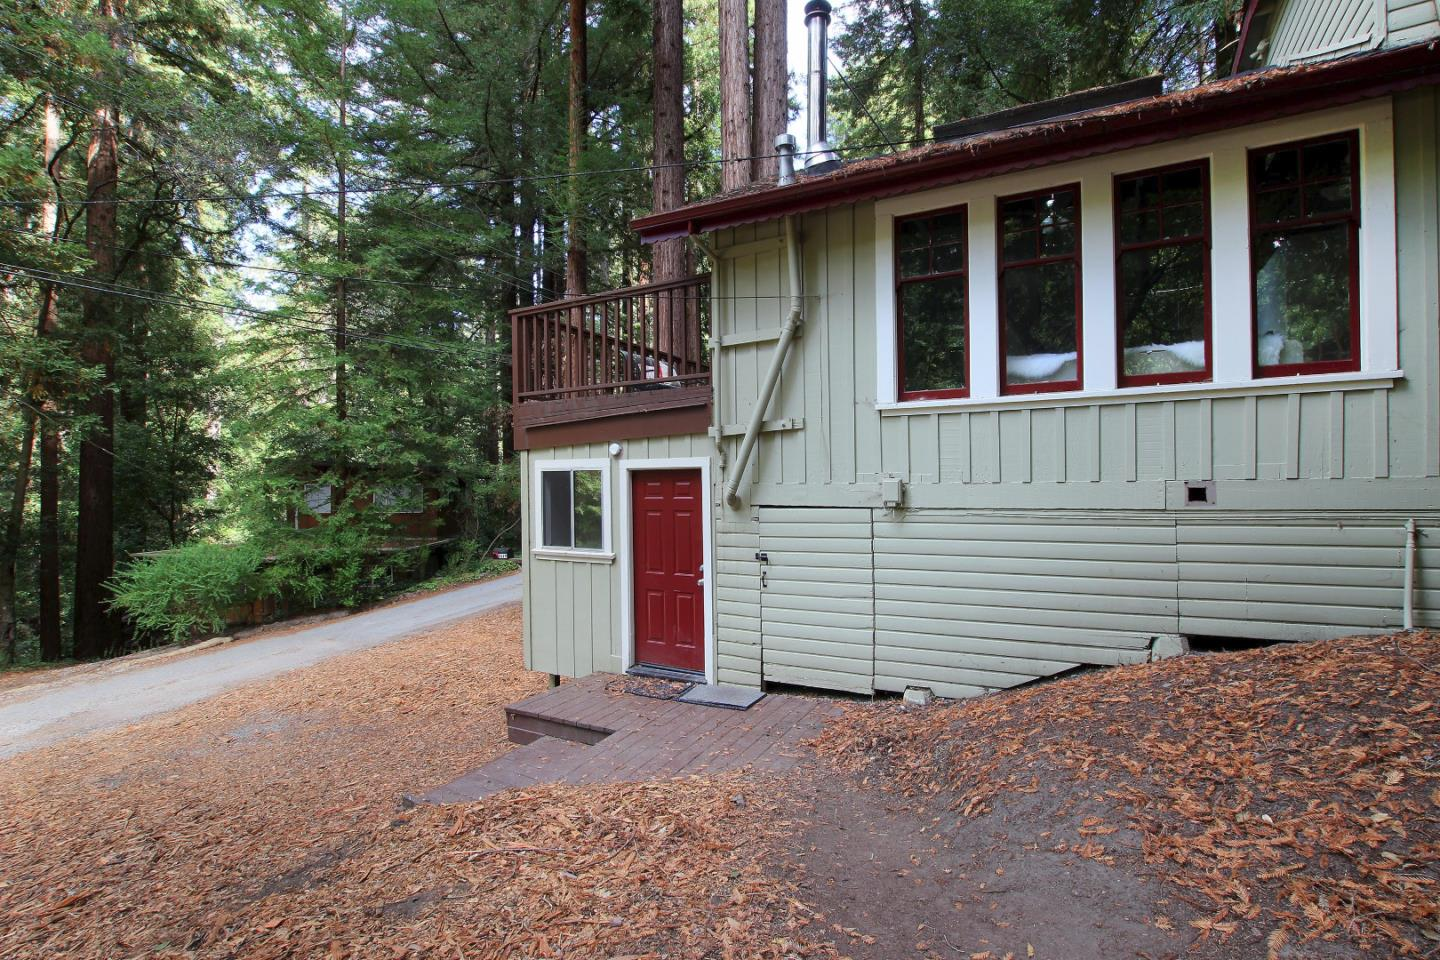 This home captures the wonders of living in the redwoods. The living room with Beautiful wood floors an open beam ceiling, wood burning stove and wood sash windows make this a room to settle into. Kitchen opens up to a great dining or family room with French doors out to the back and side yard. This is a 2+ bedroom, 2 full bath, with a great cloak closet. The decks wrap around the house for great entertaining and outdoor lounging. Inside laundry and extra storage. Located in Forest Lakes Community and minutes from Henry Cowell Park and downtown Felton.